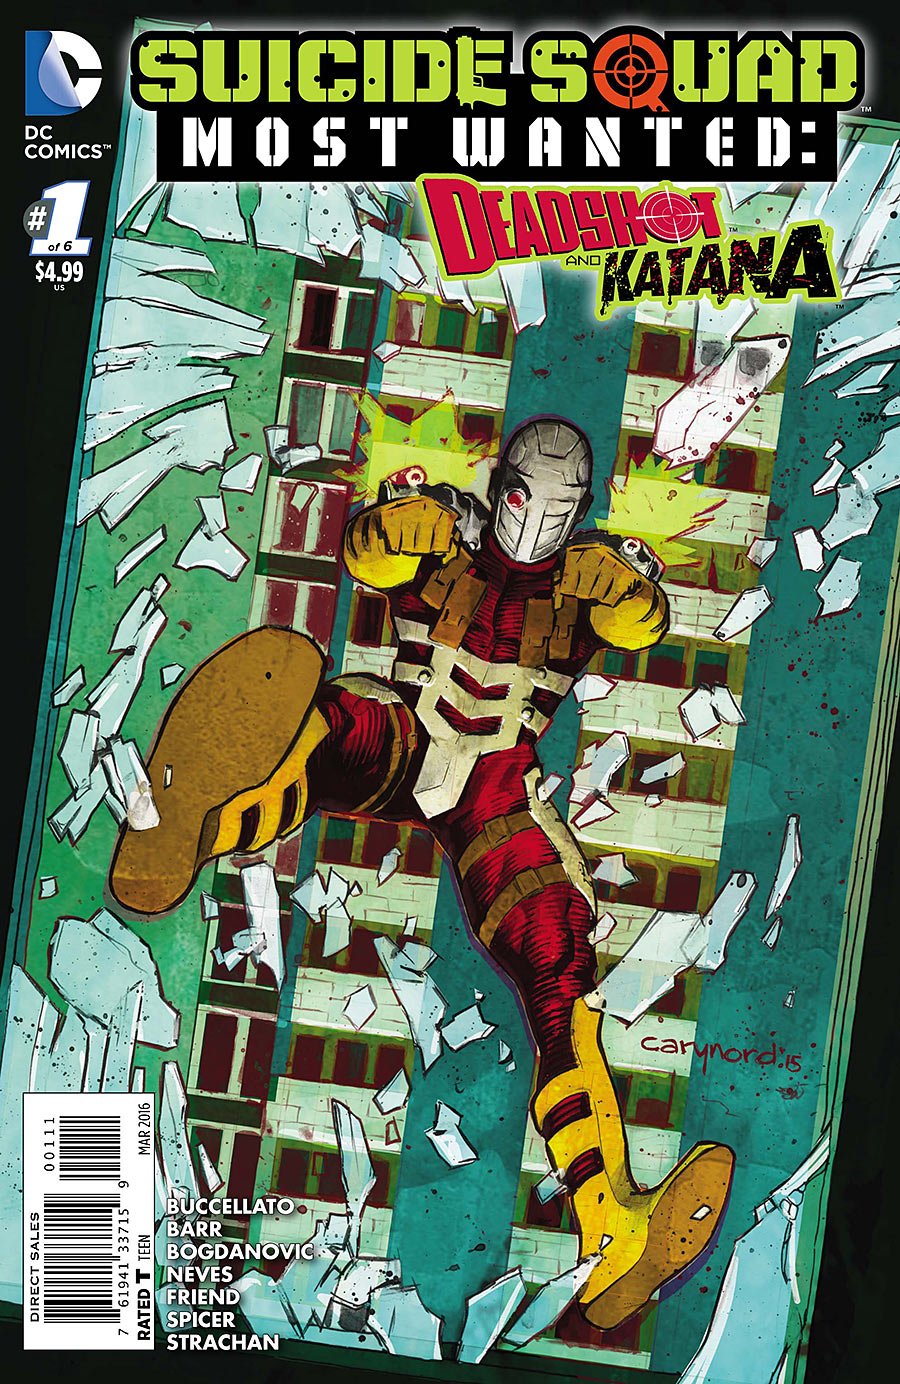 Suicide Squad Most Wanted: Deadshot and Katana Vol 1 1